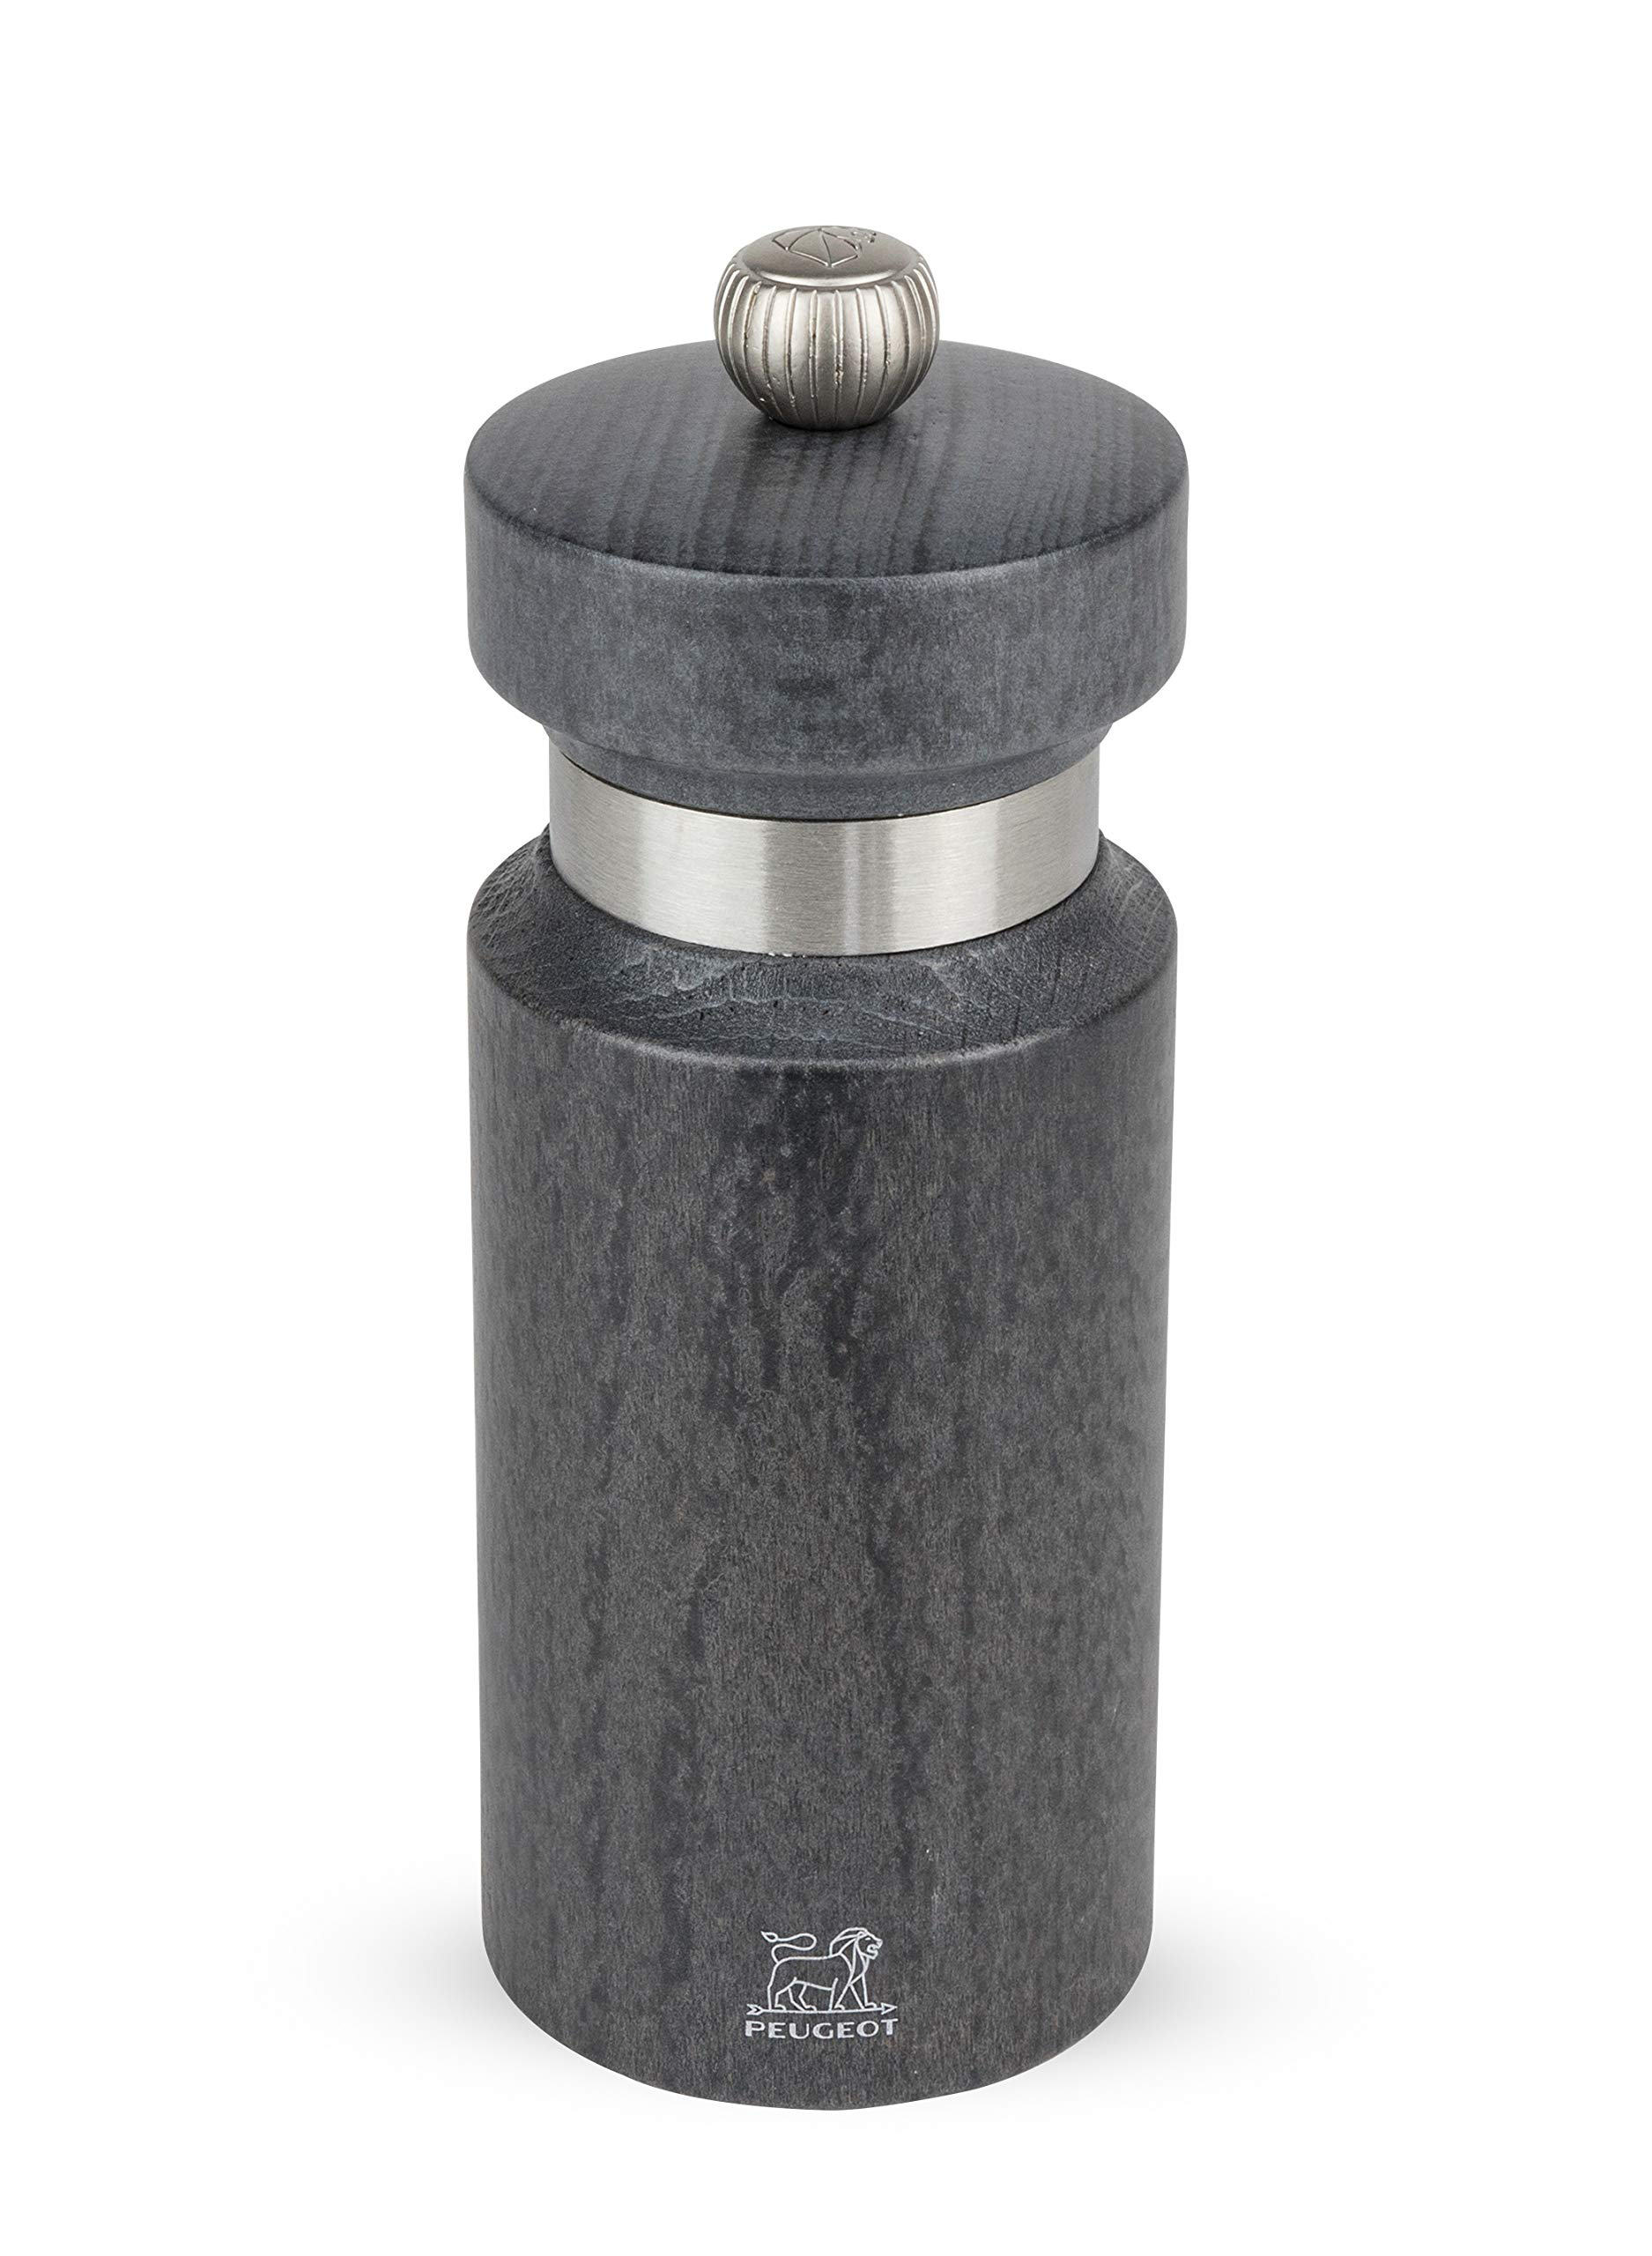 Peugeot 33880 Classic Royan Pepper Mill, 5.5'', Gray by Peugeot